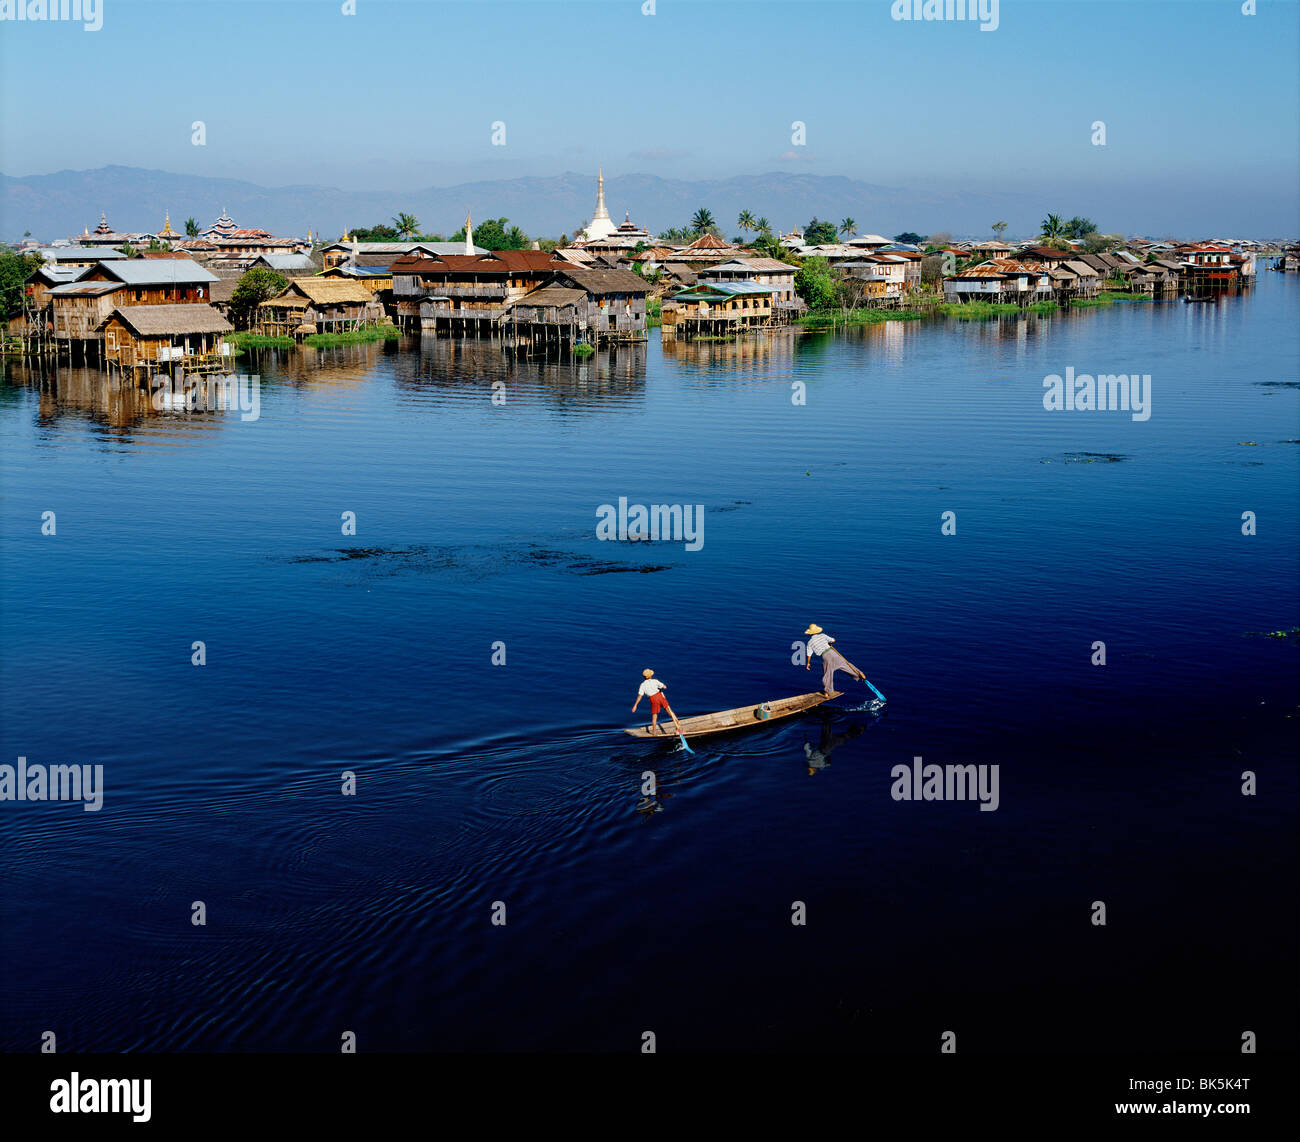 Inle Lake, and distant hills of Shan Plateau, Shan State, Myanmar (Burma), Asia - Stock Image